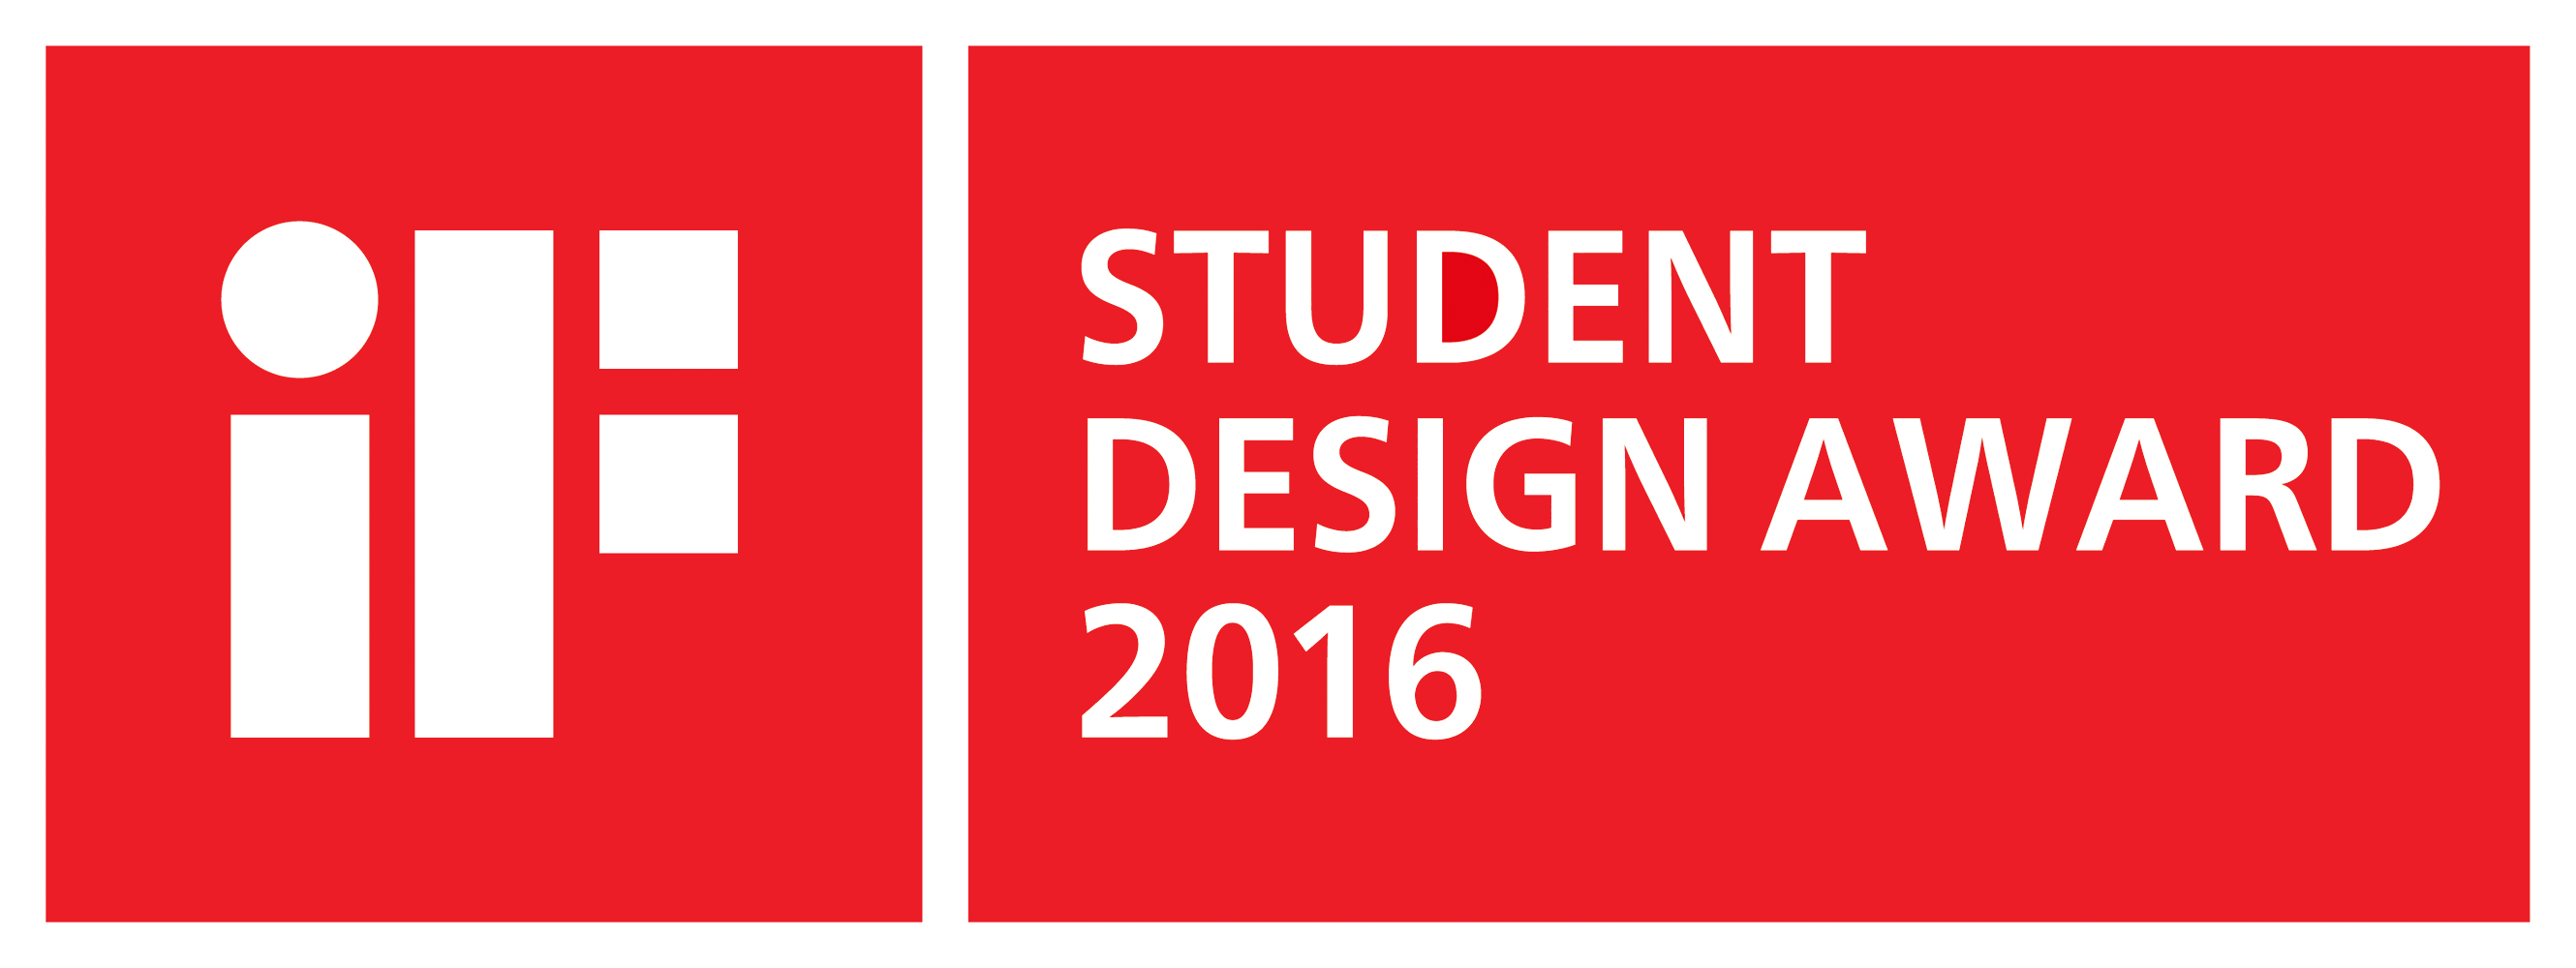 Designen mit scheinen der if student design award 2016 for Milano design award 2016